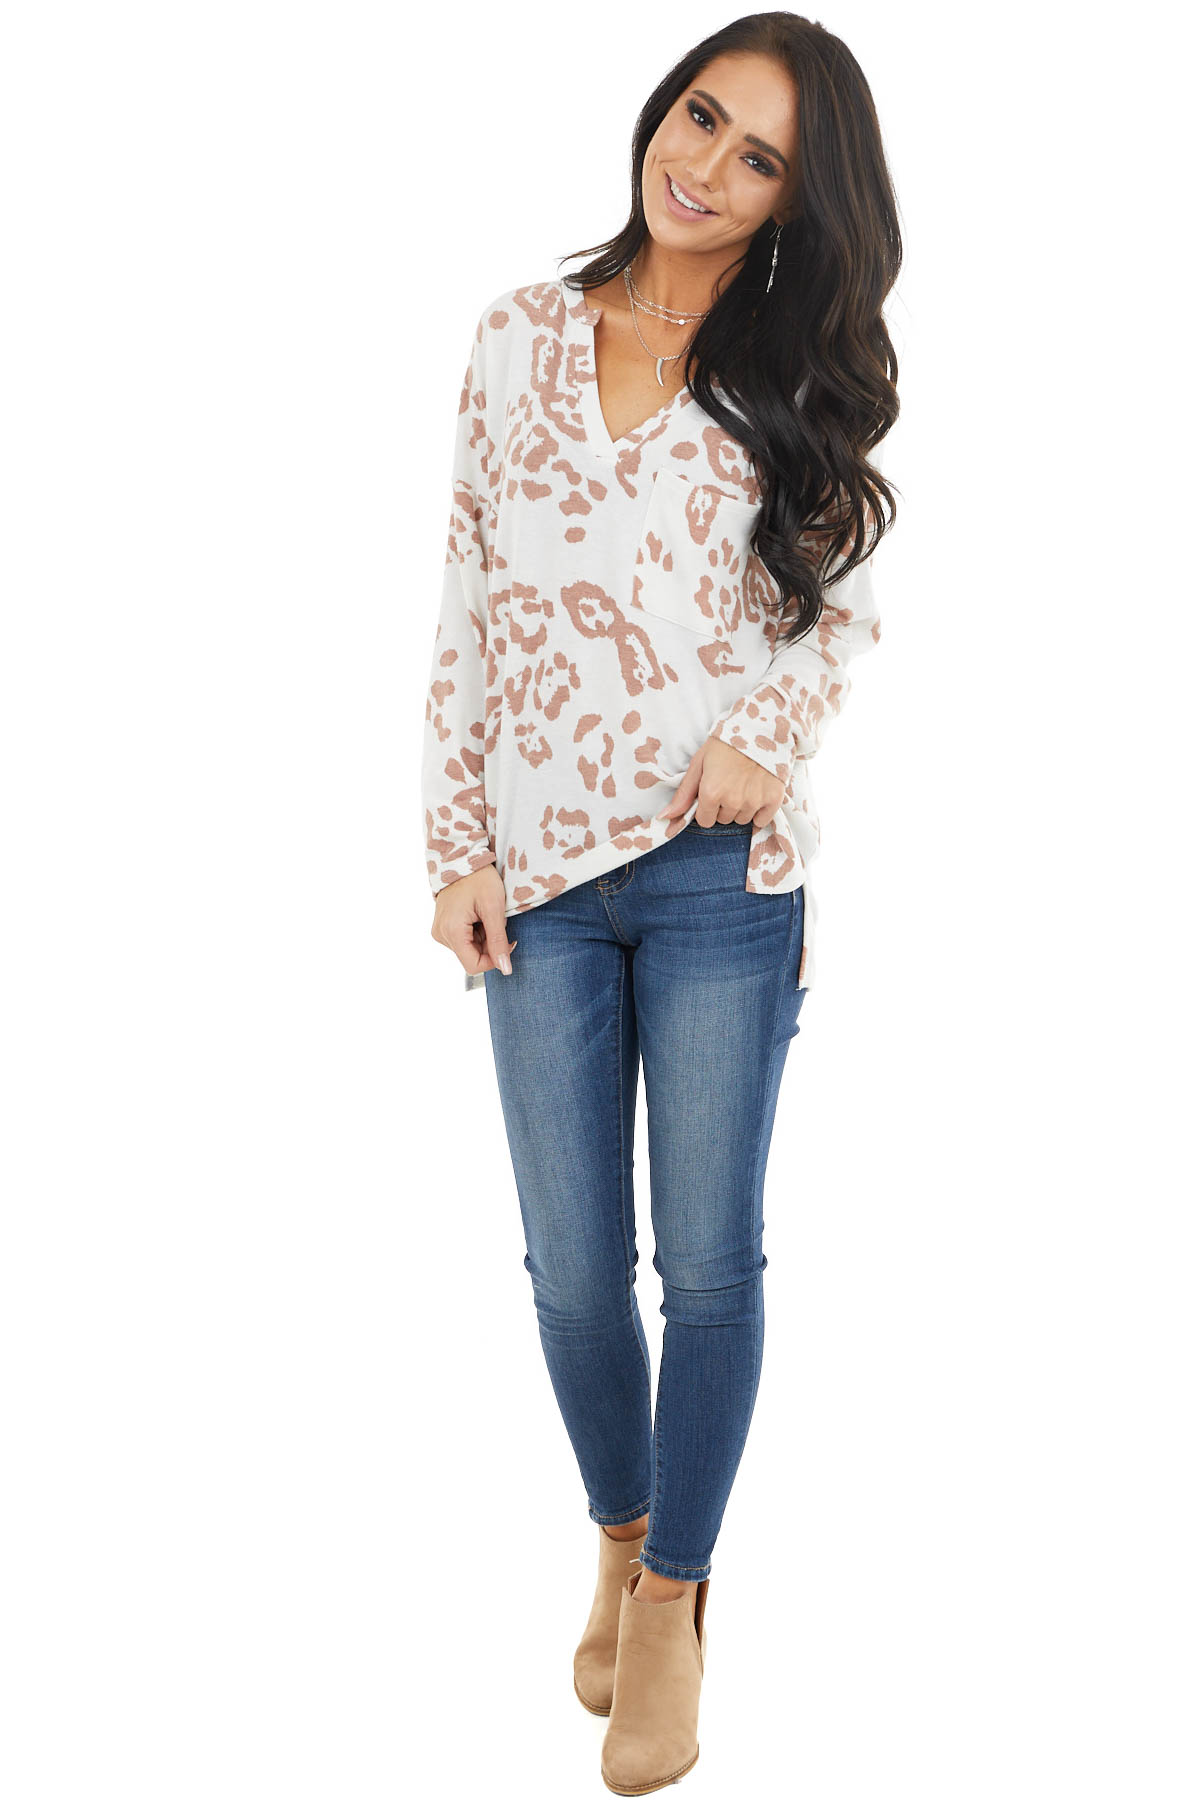 vIvory Leopard Print Long Sleeve Top with Front Pocket